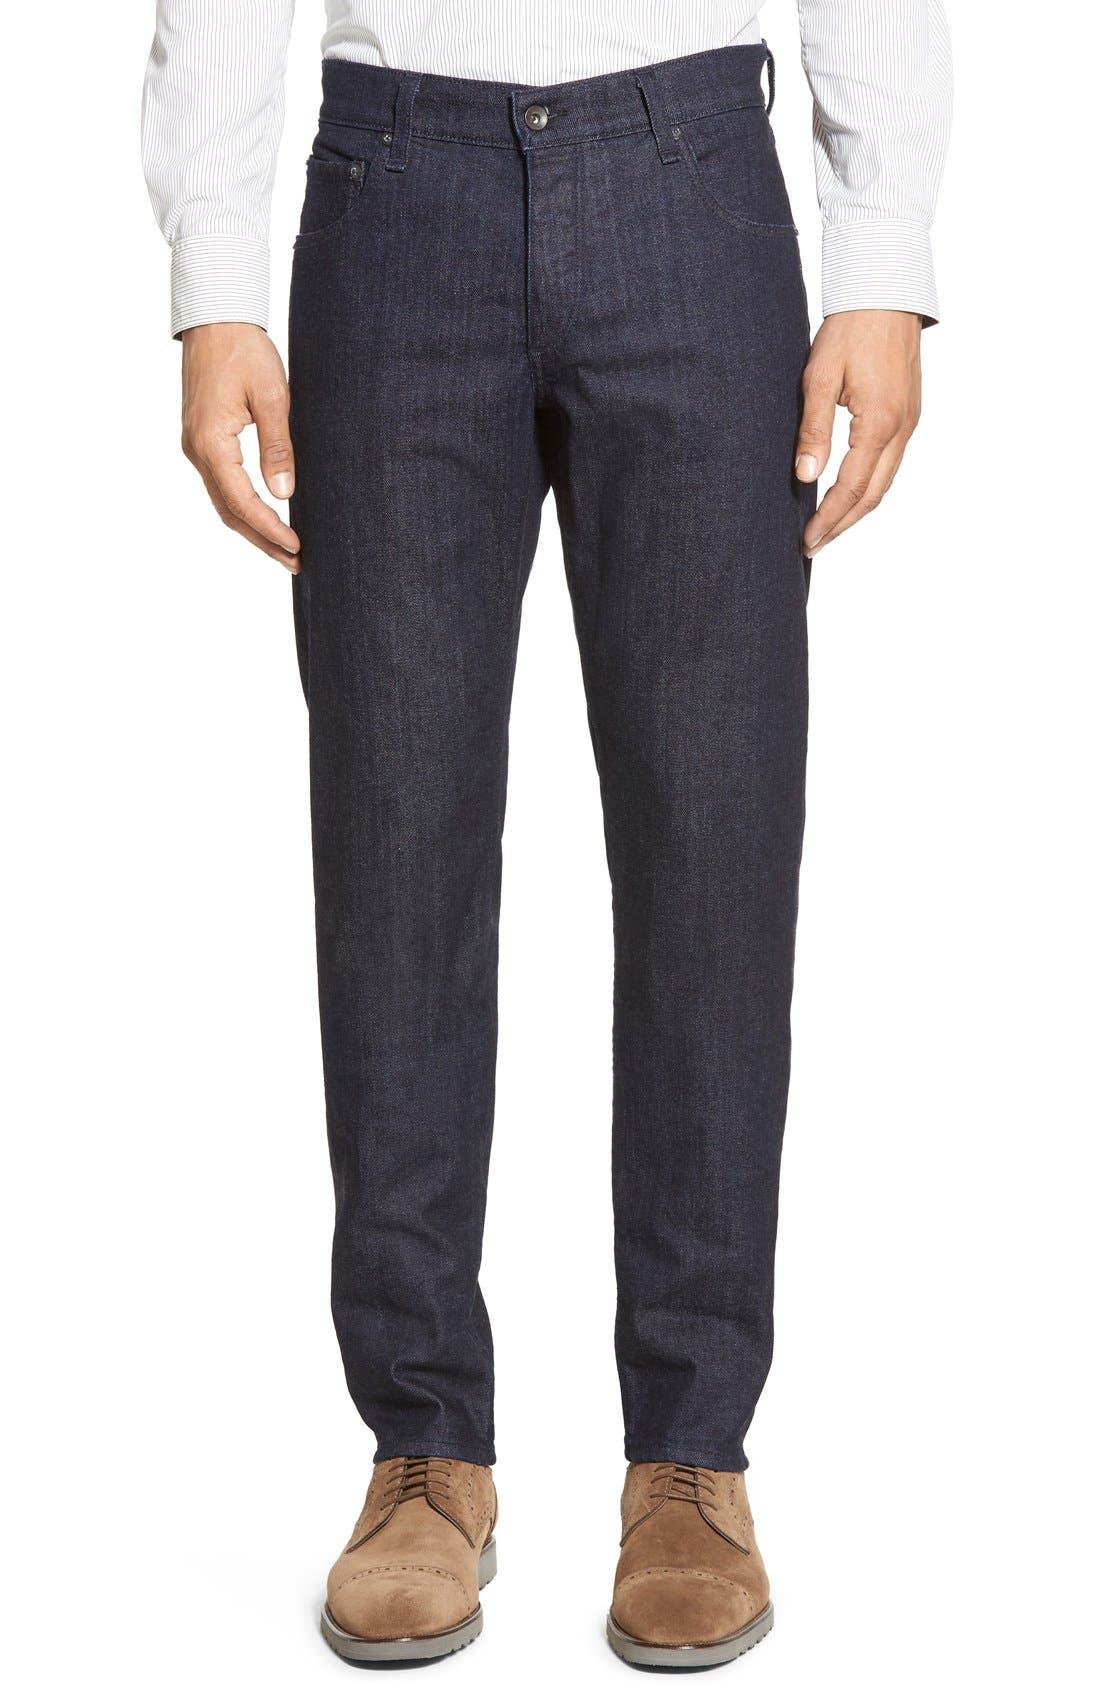 rag & bone Standard Issue Fit 2 Slim Fit Jeans (Tonal Rinse)